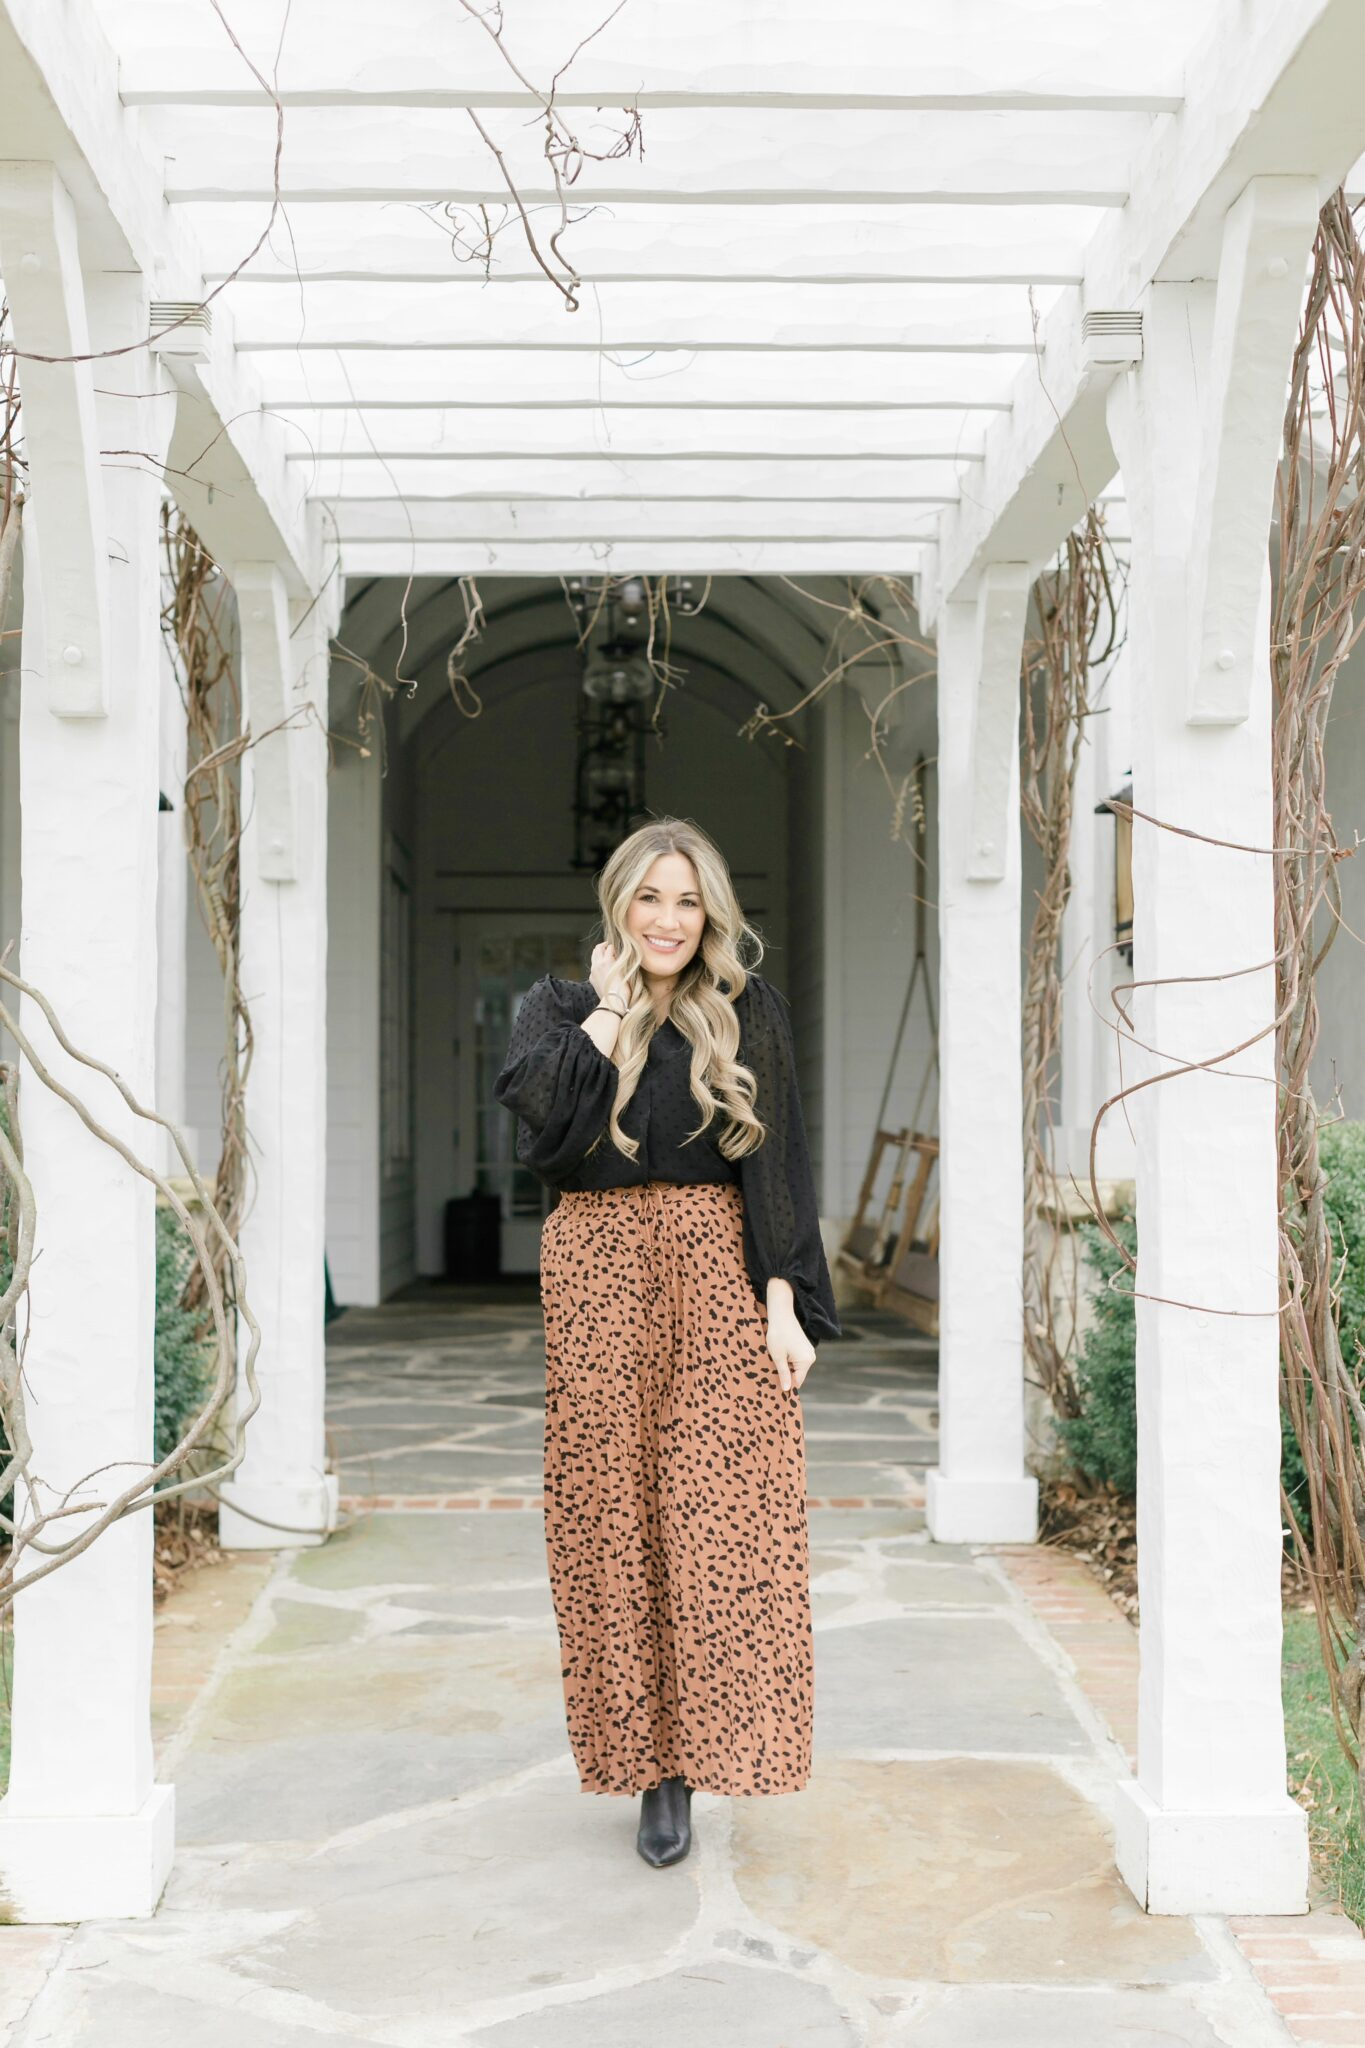 PinkBlush animal print maxi skirt styled by top Memphis fashion blogger, Walking in Memphis in High Heels.